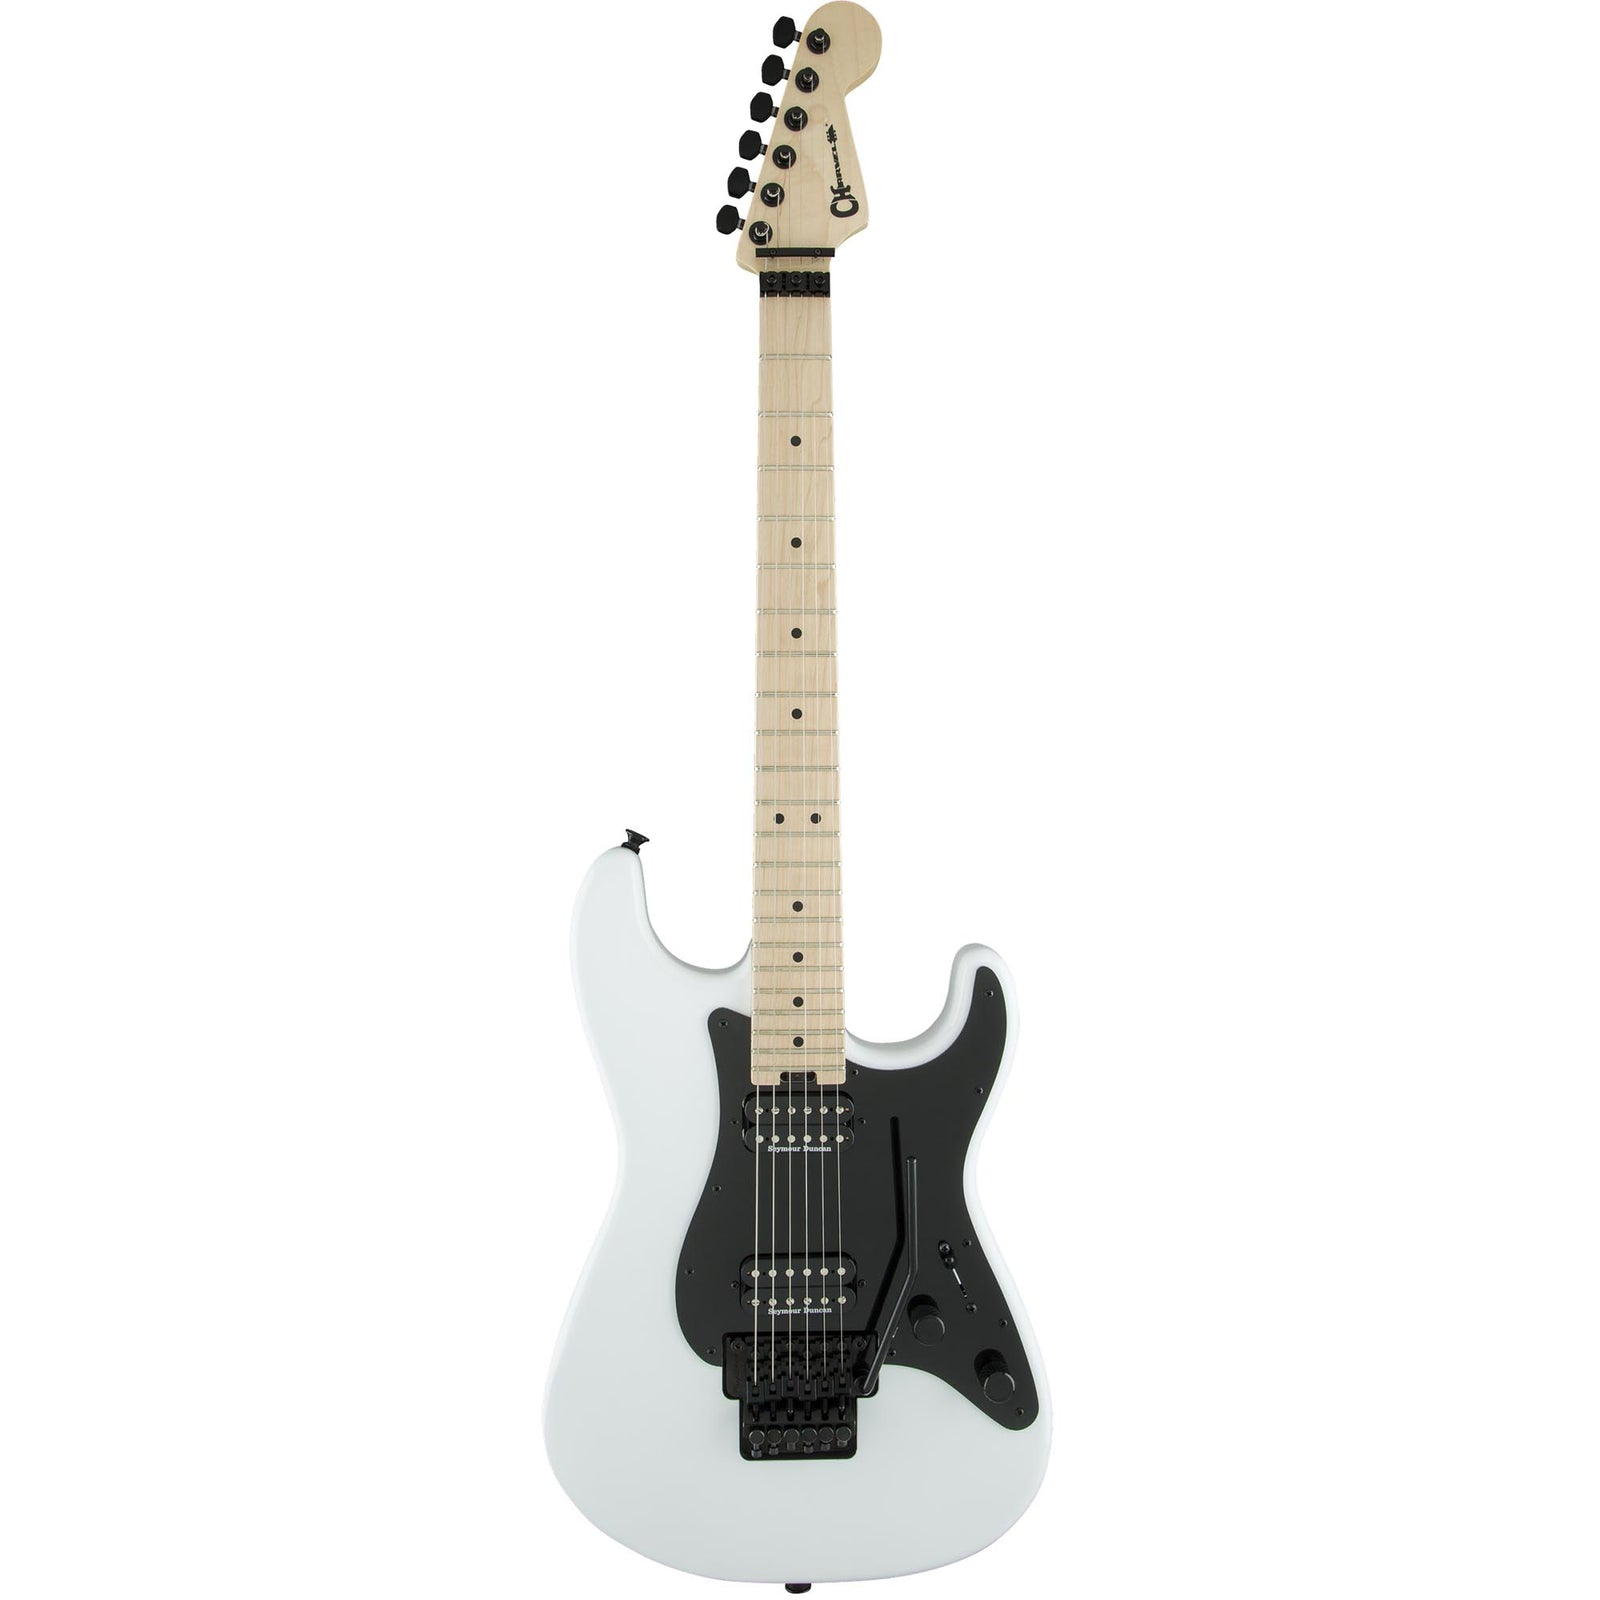 Charvel Pro Mod So Cal - Snow White - 2 Humbuckers - Floyd Rose